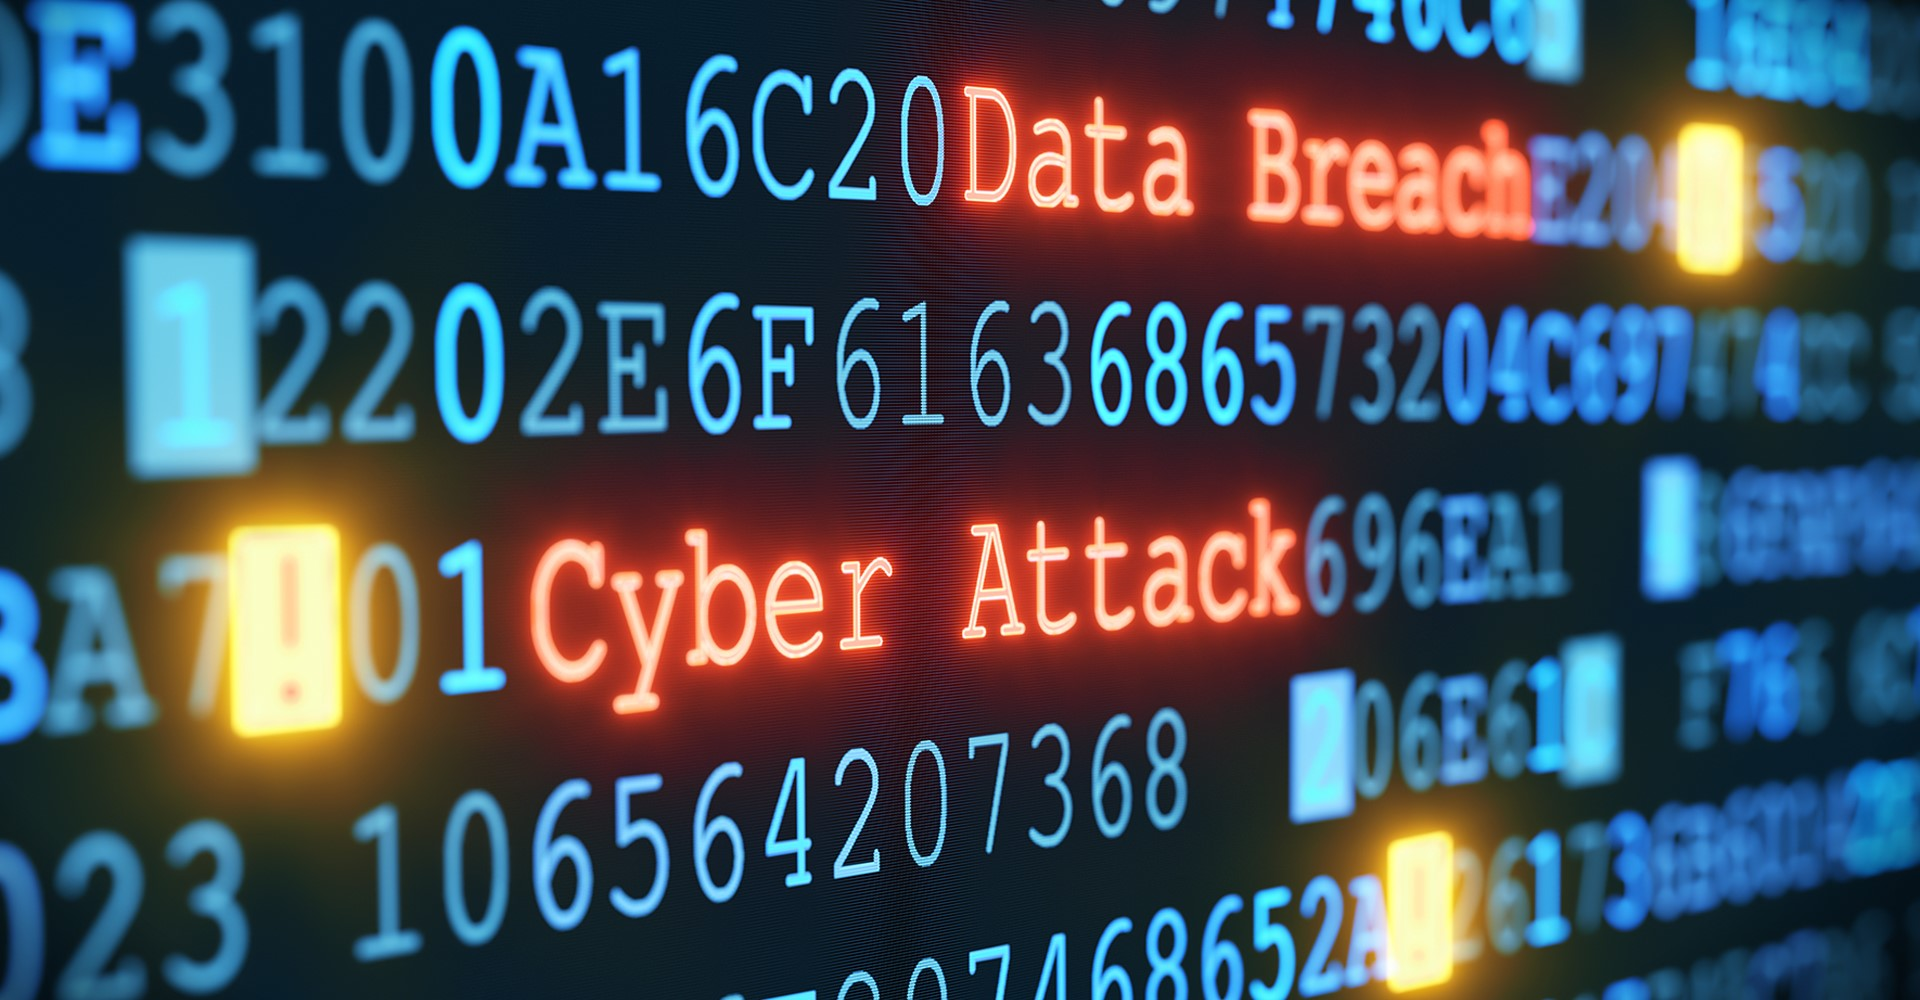 Data breach put millions of emails at risk